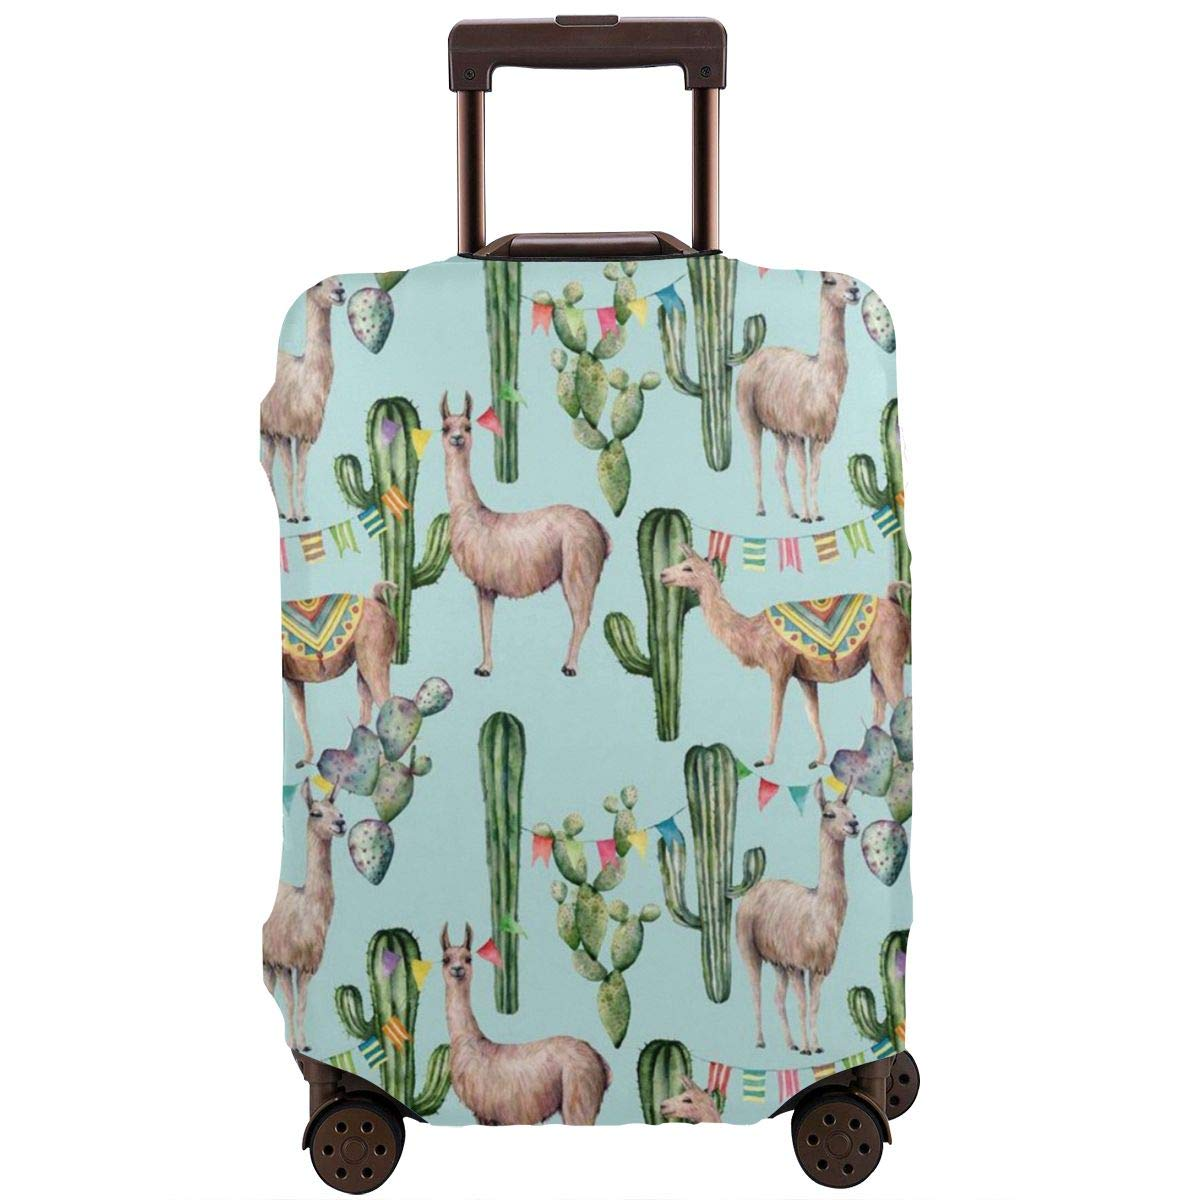 Luggage Cover Llama Cactus Flowers Cacti Floral And Flag Protective Travel Trunk Case Elastic Luggage Suitcase Protector Cover